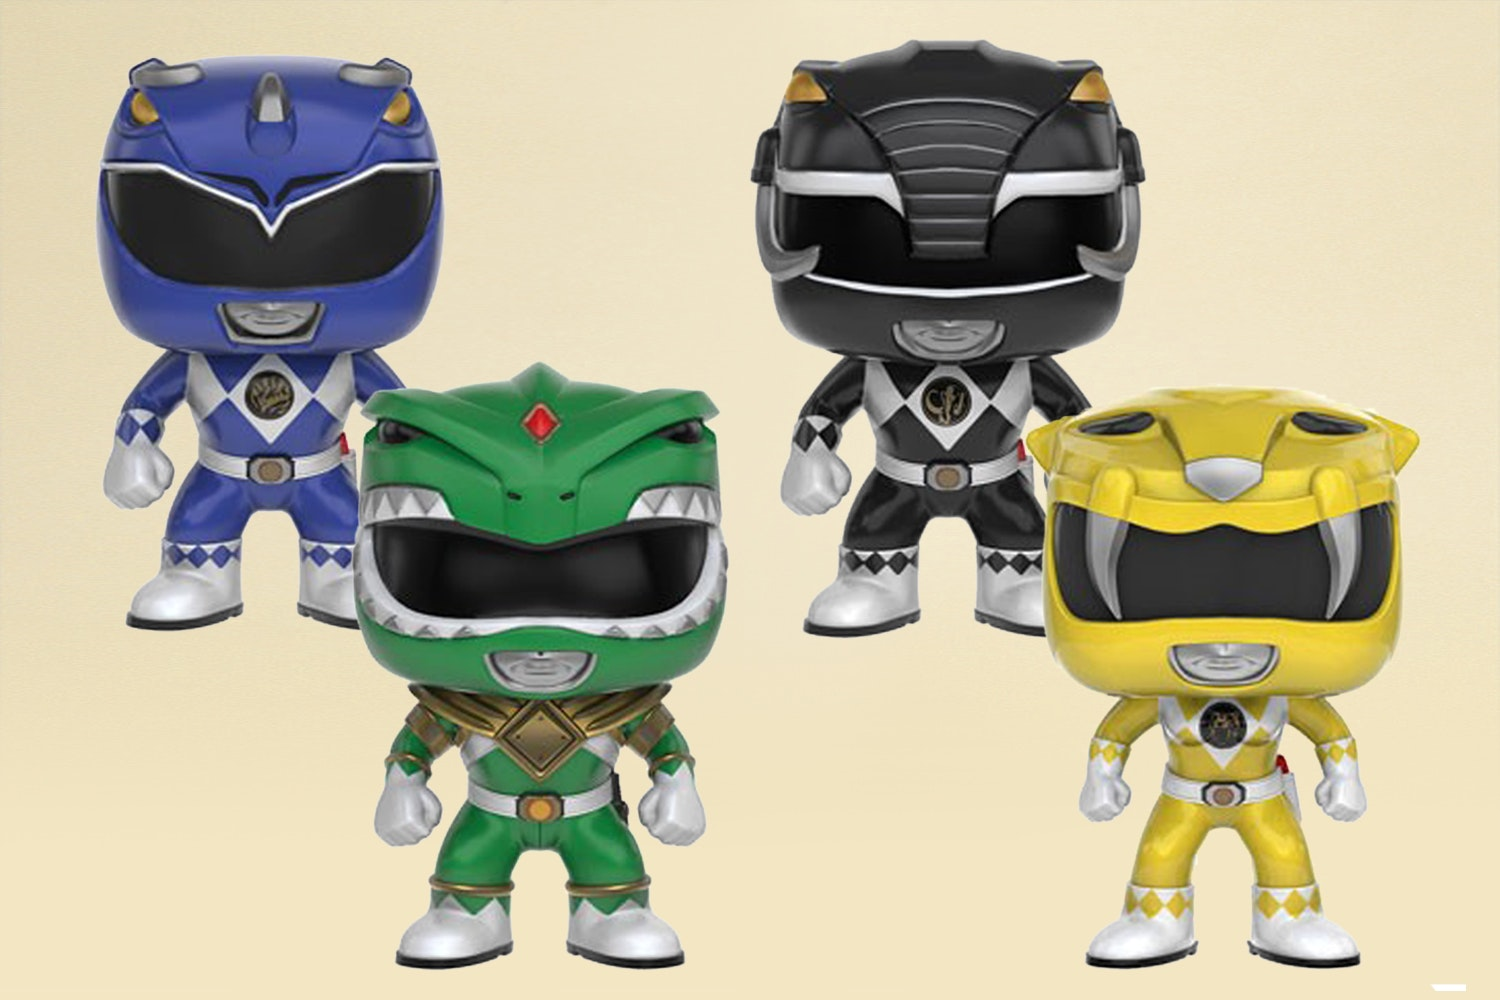 POP! TV: Mighty Power Rangers Set